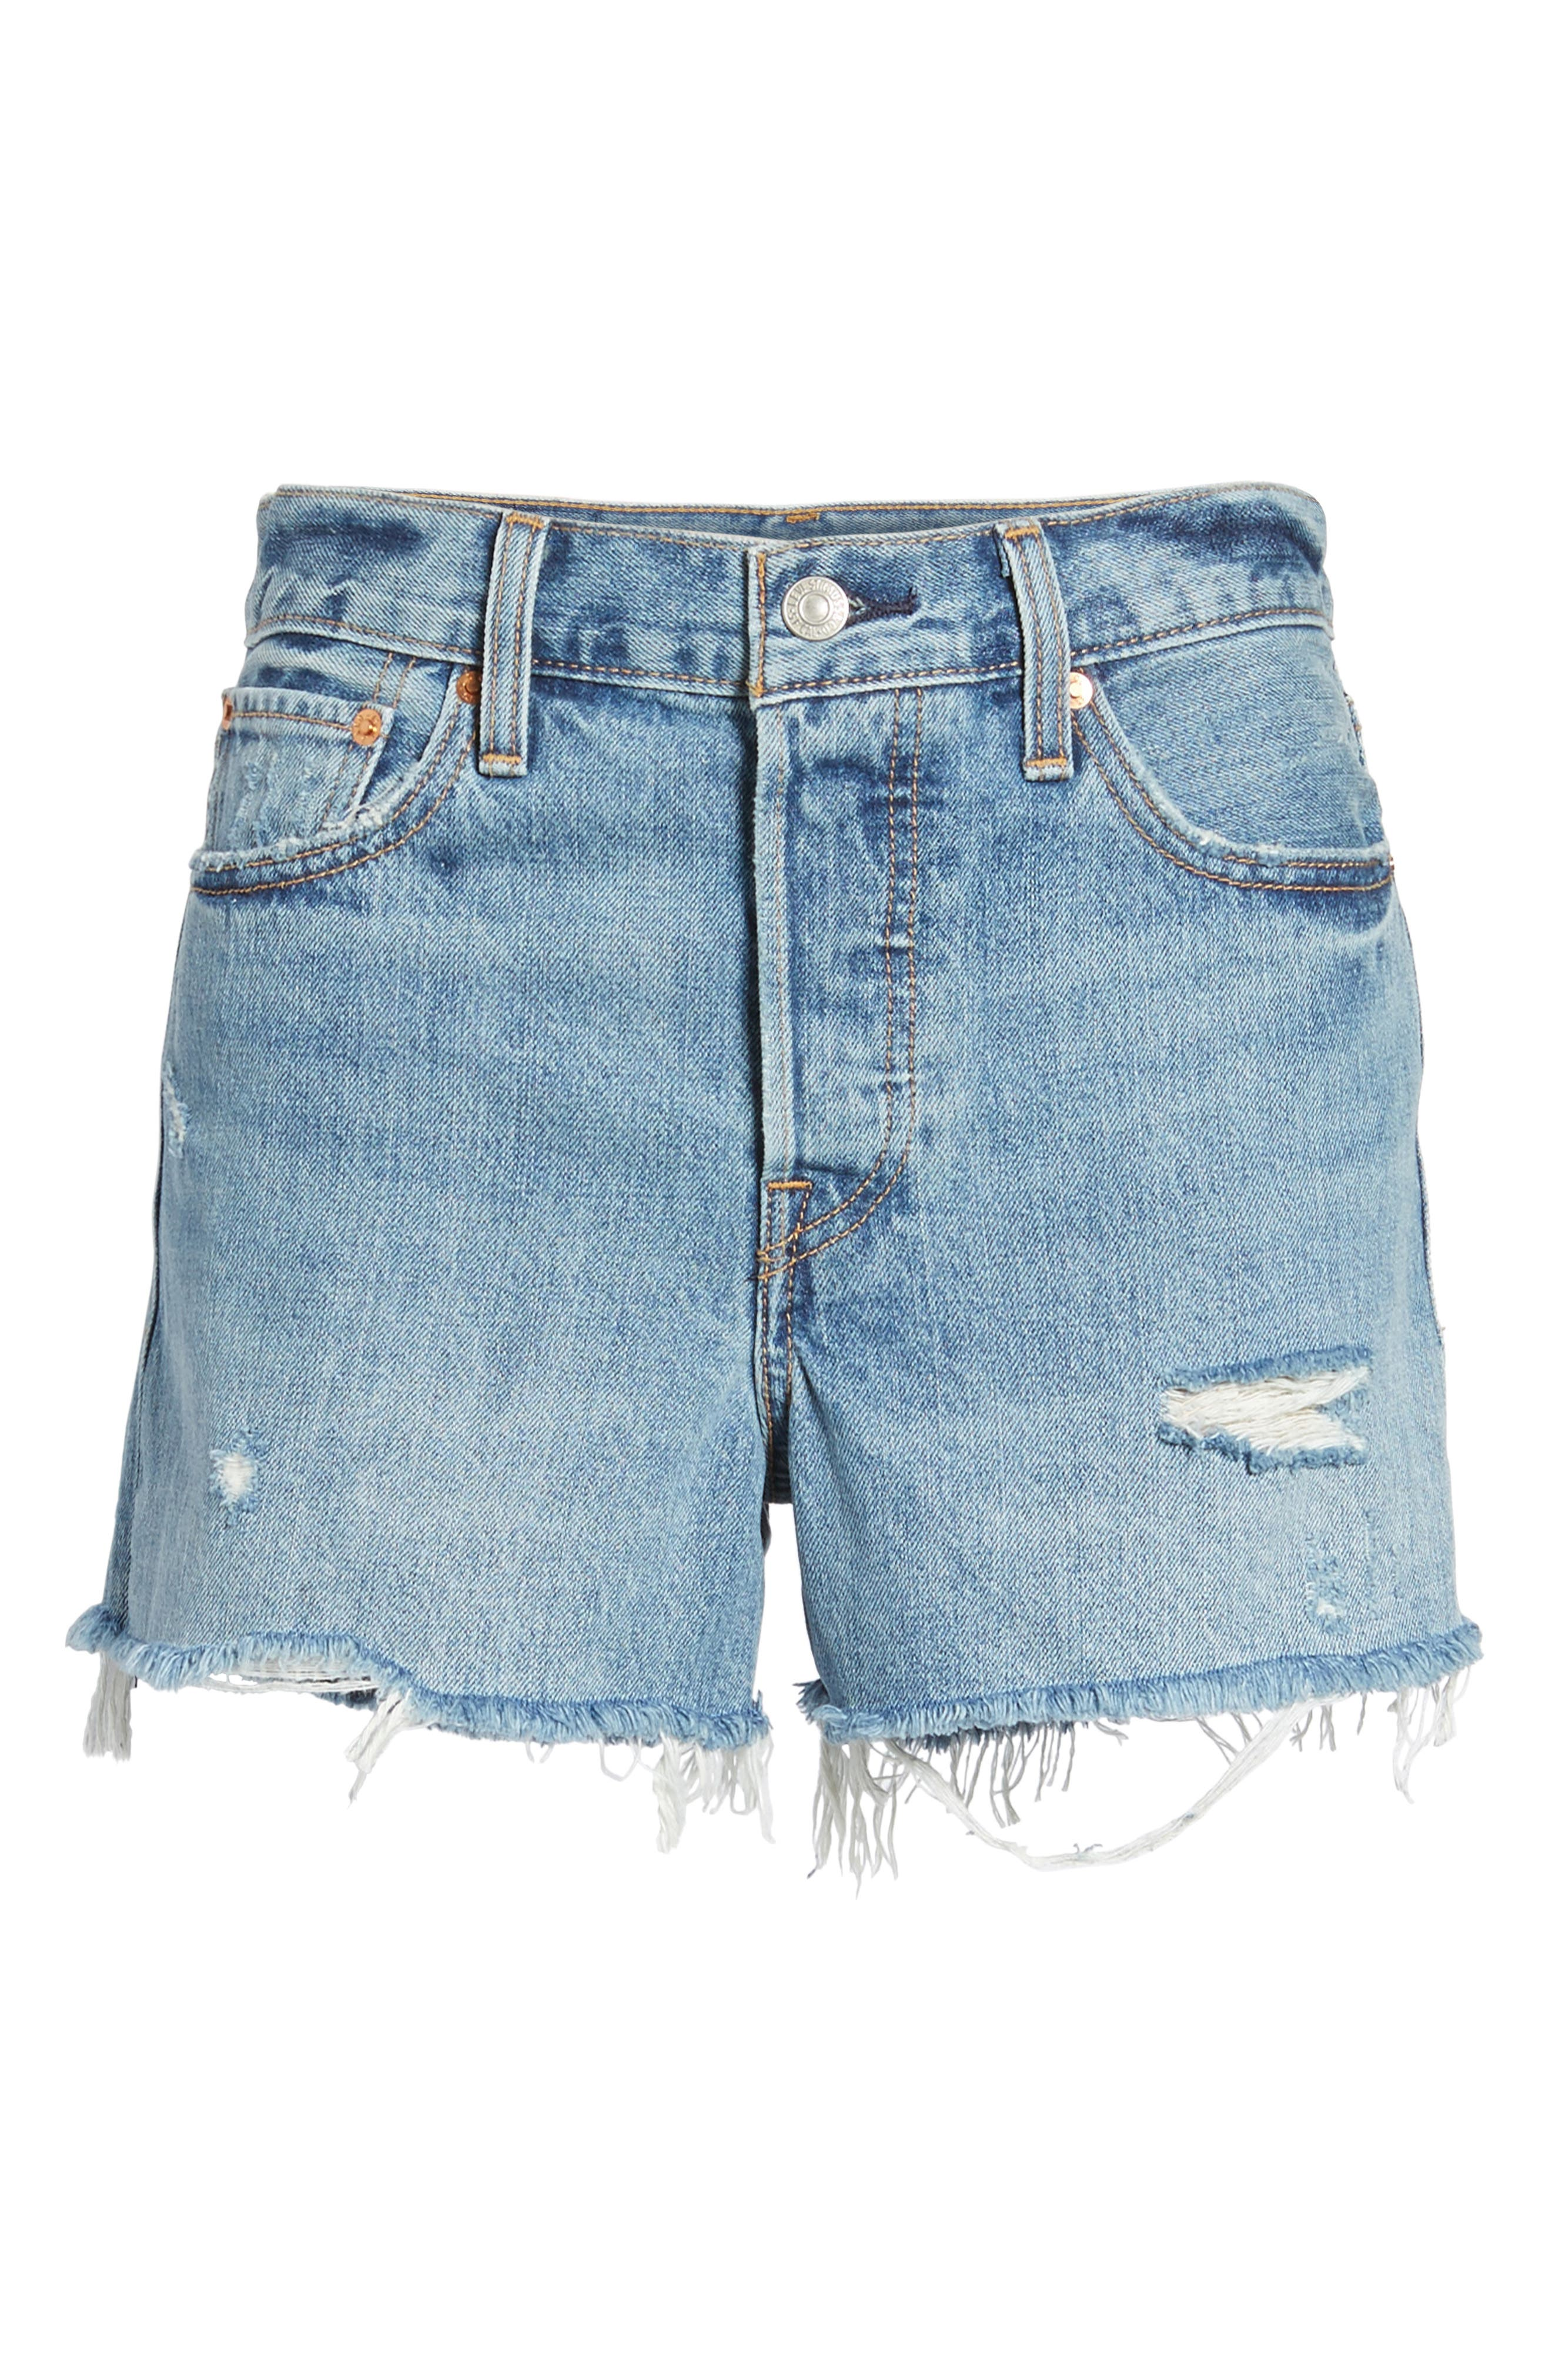 Wedgie High Waist Cutoff Denim Shorts,                             Alternate thumbnail 6, color,                             Blue Your Mind